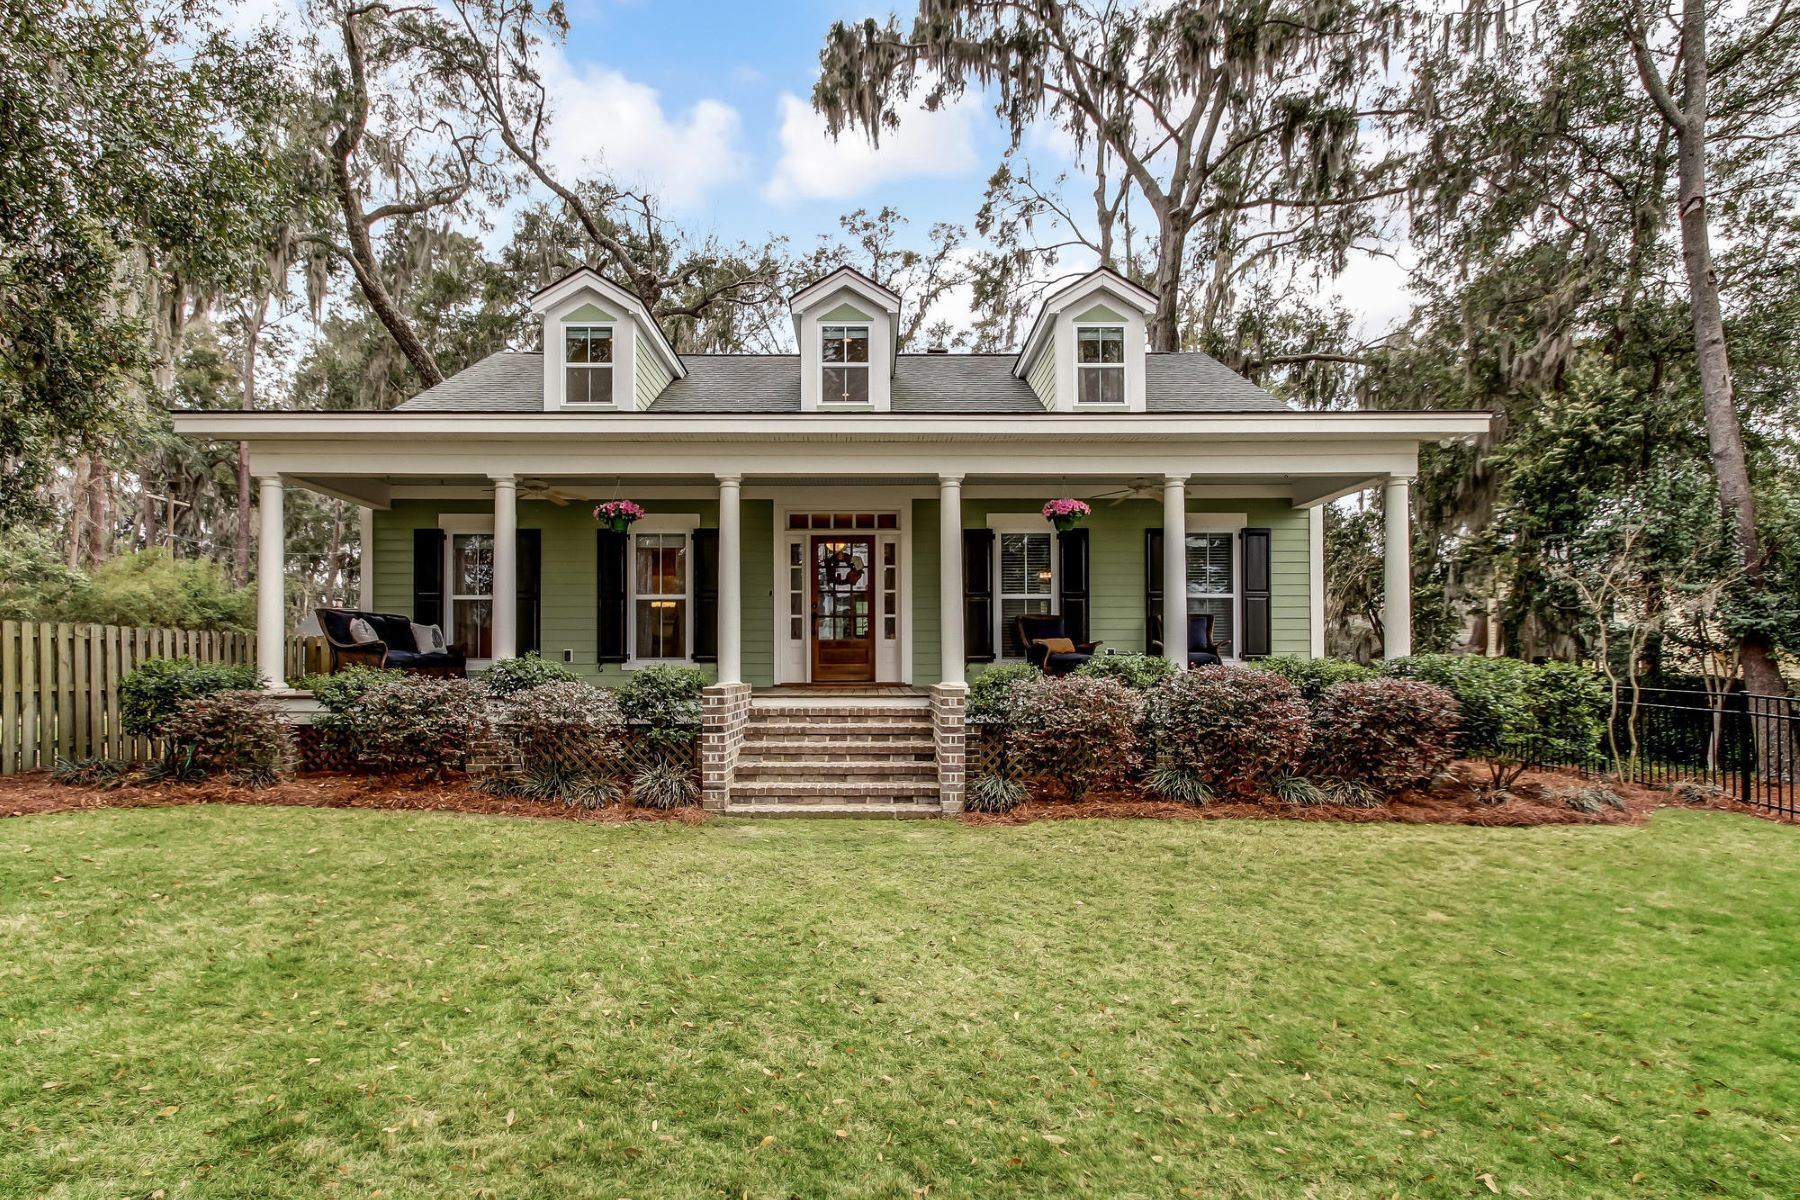 Single Family Home for Sale at 9351 Whitefield Ave. 9351 Whitefield Avenue Savannah, Georgia 31406 United States